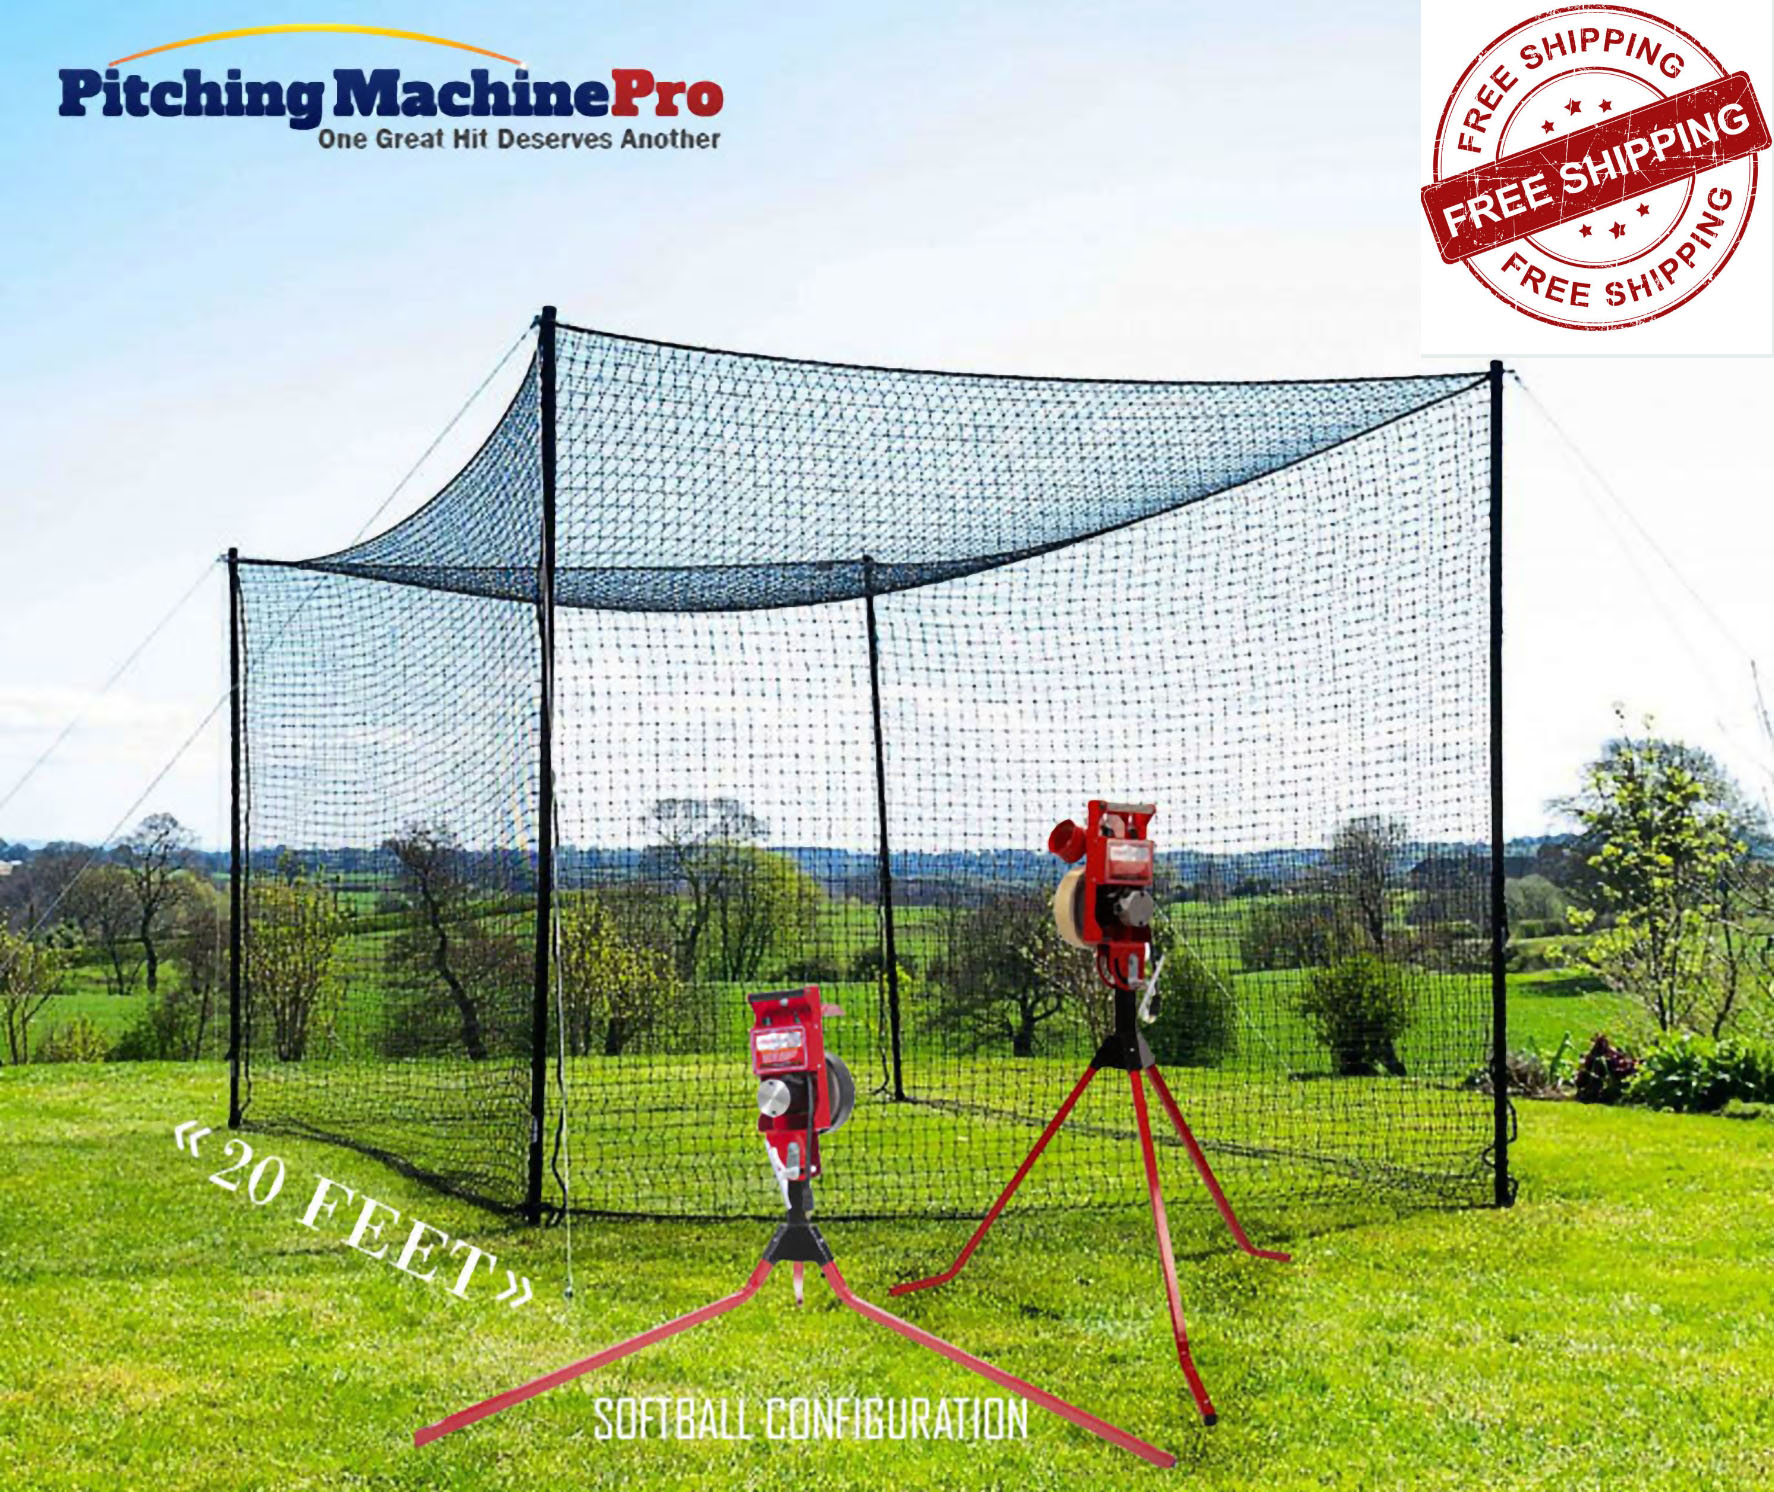 First Pitch Relief Pitching Machine + Batting Cage